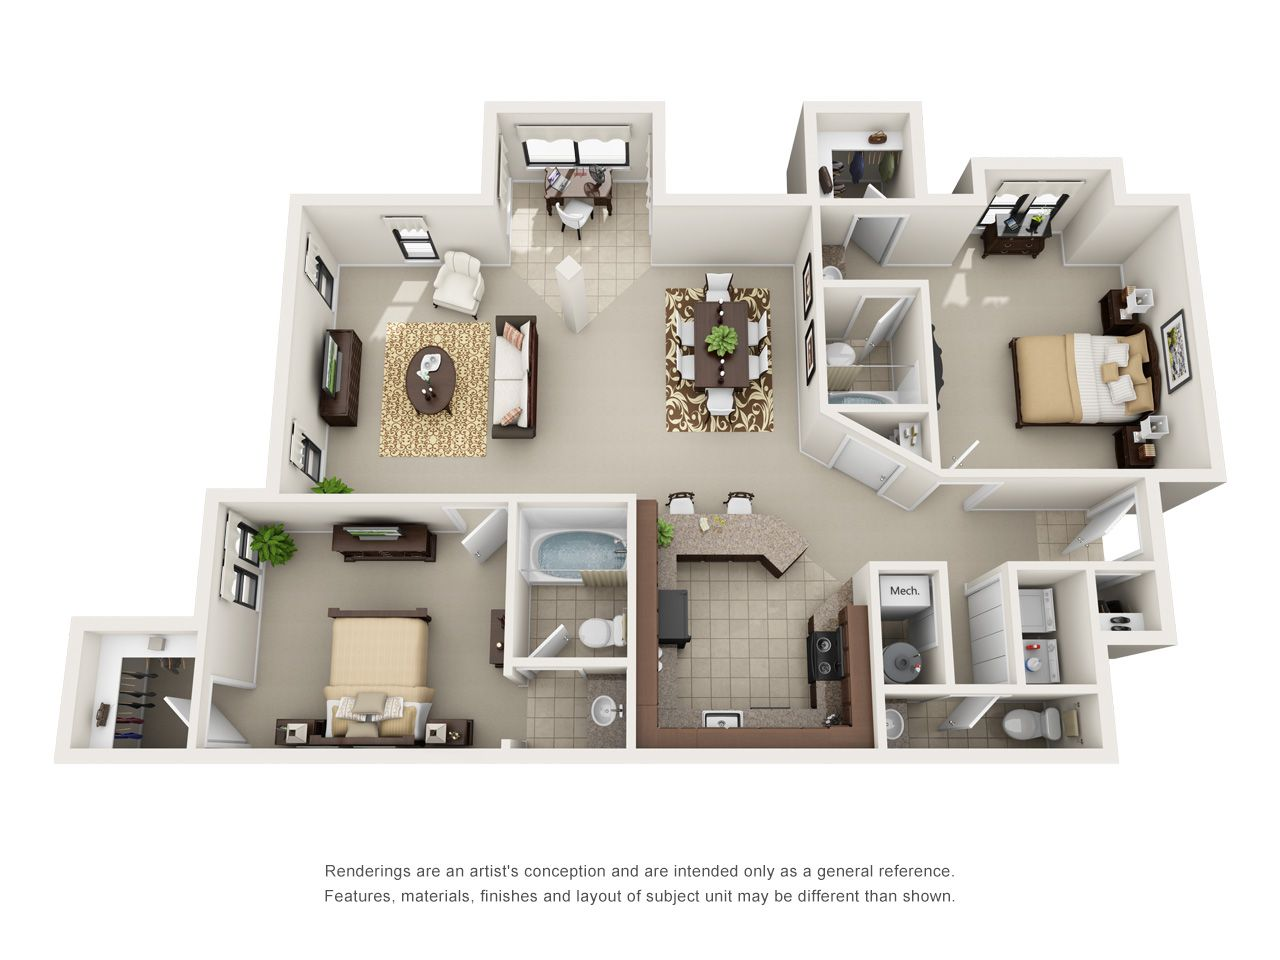 1 2 3 Bedroom Apartments In Hoover Al Floor Plans Hoover Alabama Apartment Steadfast Sims House Design Apartment Floor Plans Apartment Layout